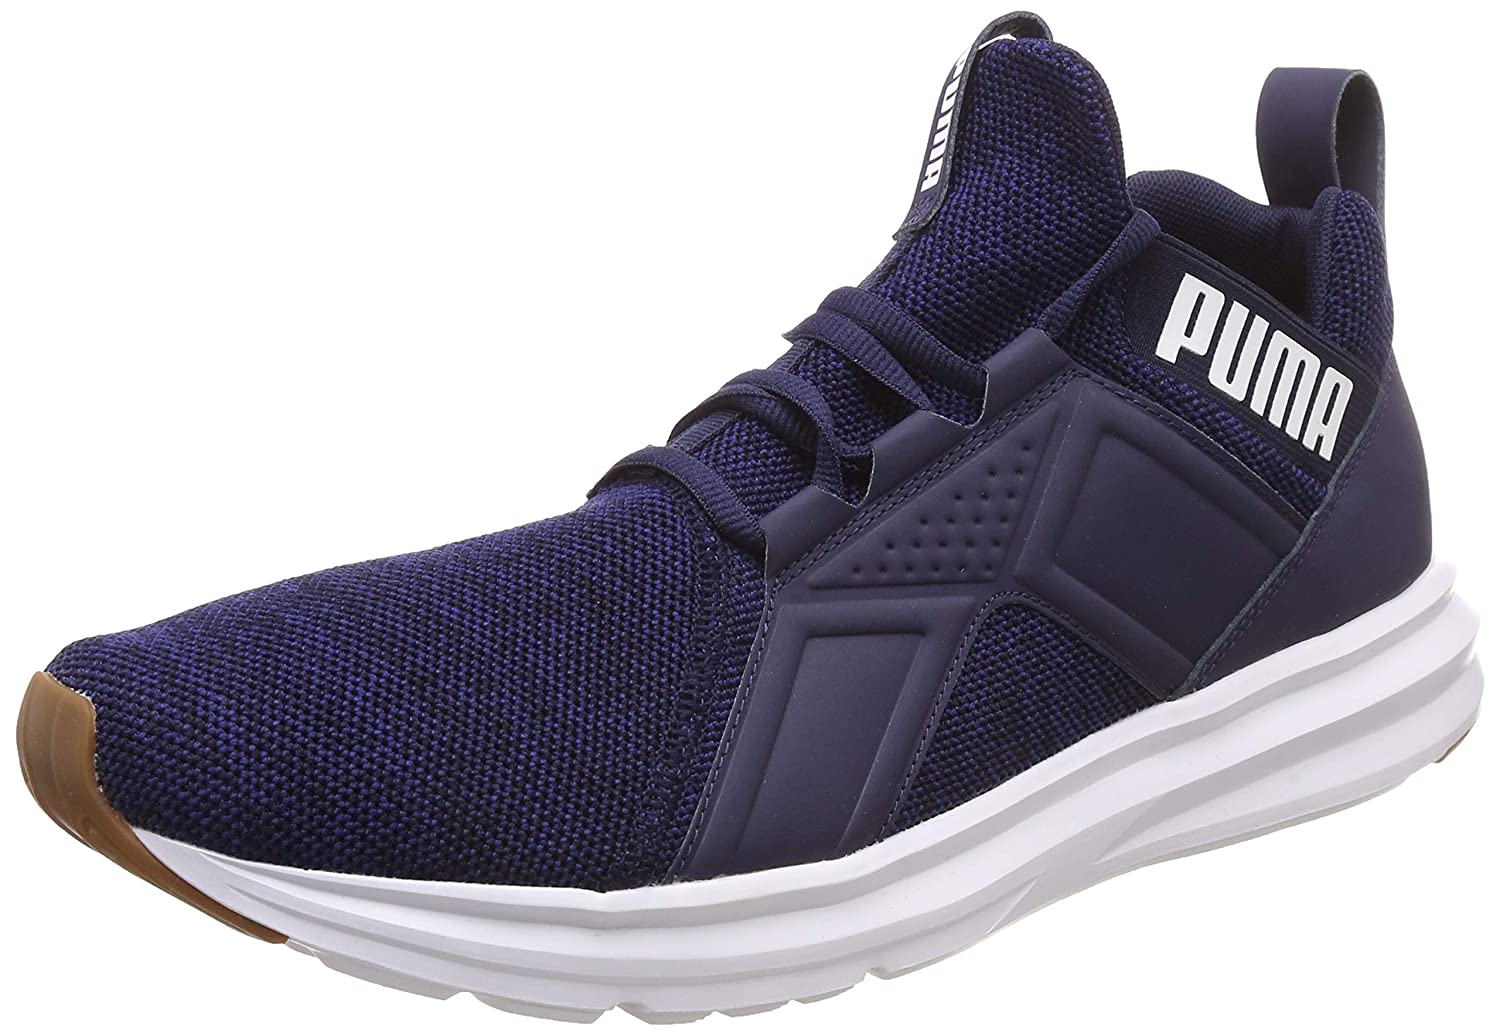 6c000ebe94b Puma Men s Enzo Knit NM Running Shoes  Buy Online at Low Prices in India -  Amazon.in